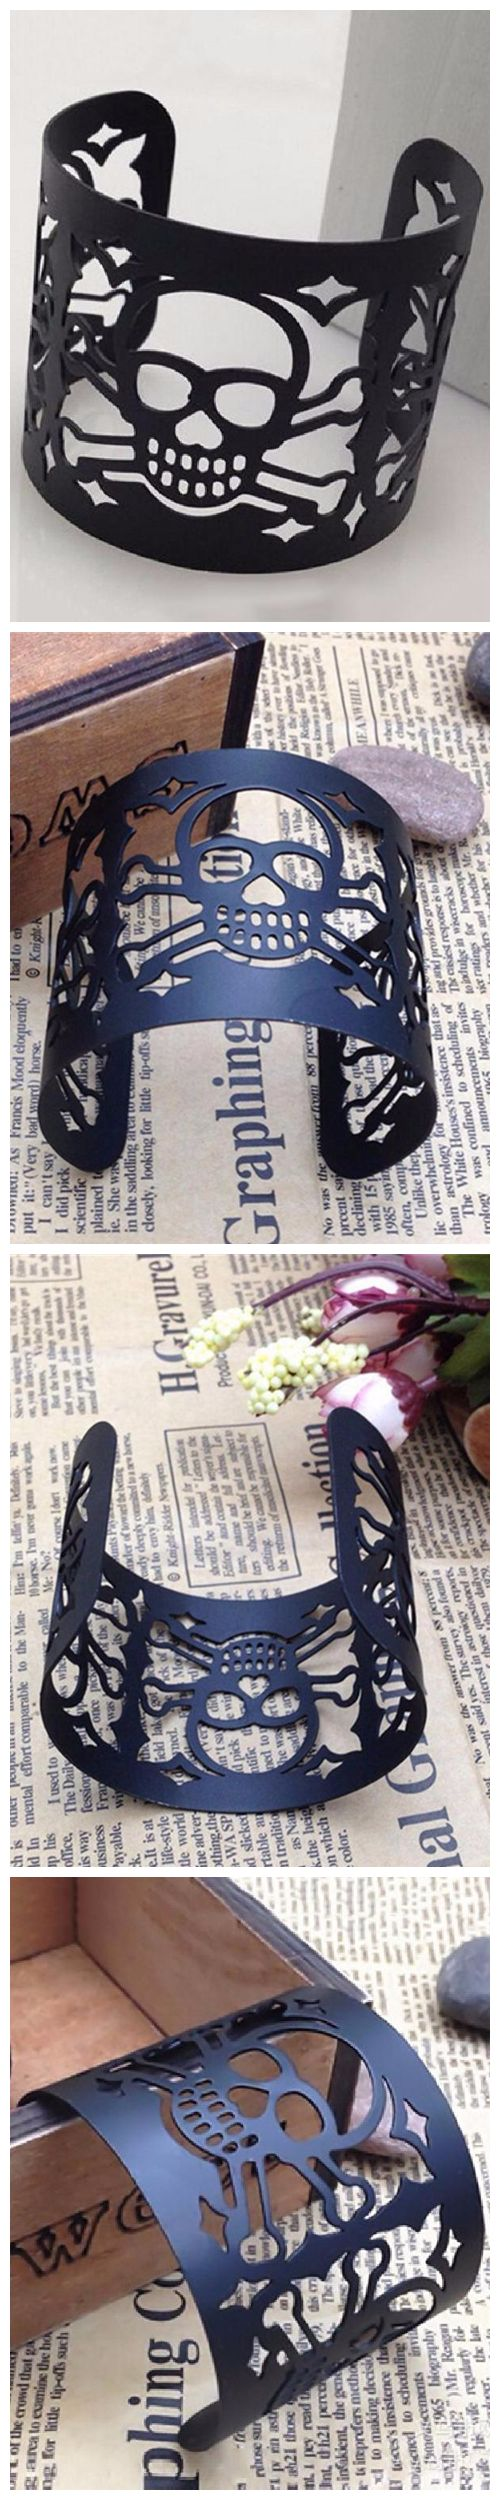 Fashion Unisex Metal Bracelet Hollow-Out Skull Wide Punk Style Bangle Jewelry $3.99